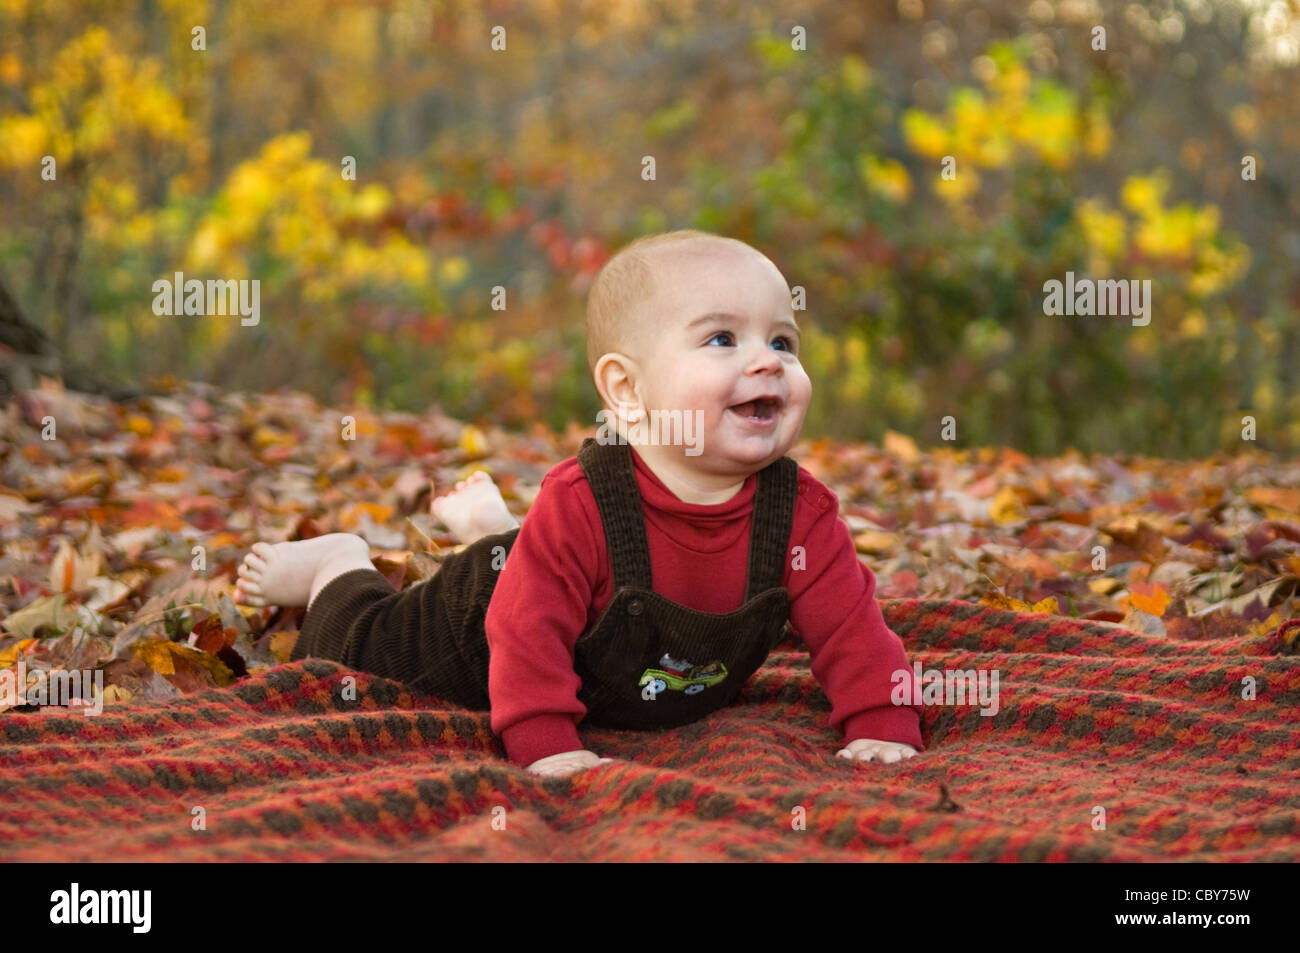 SIx Month Old Baby Boy Laying on Blanket Outside amid Autumn Color - Stock Image